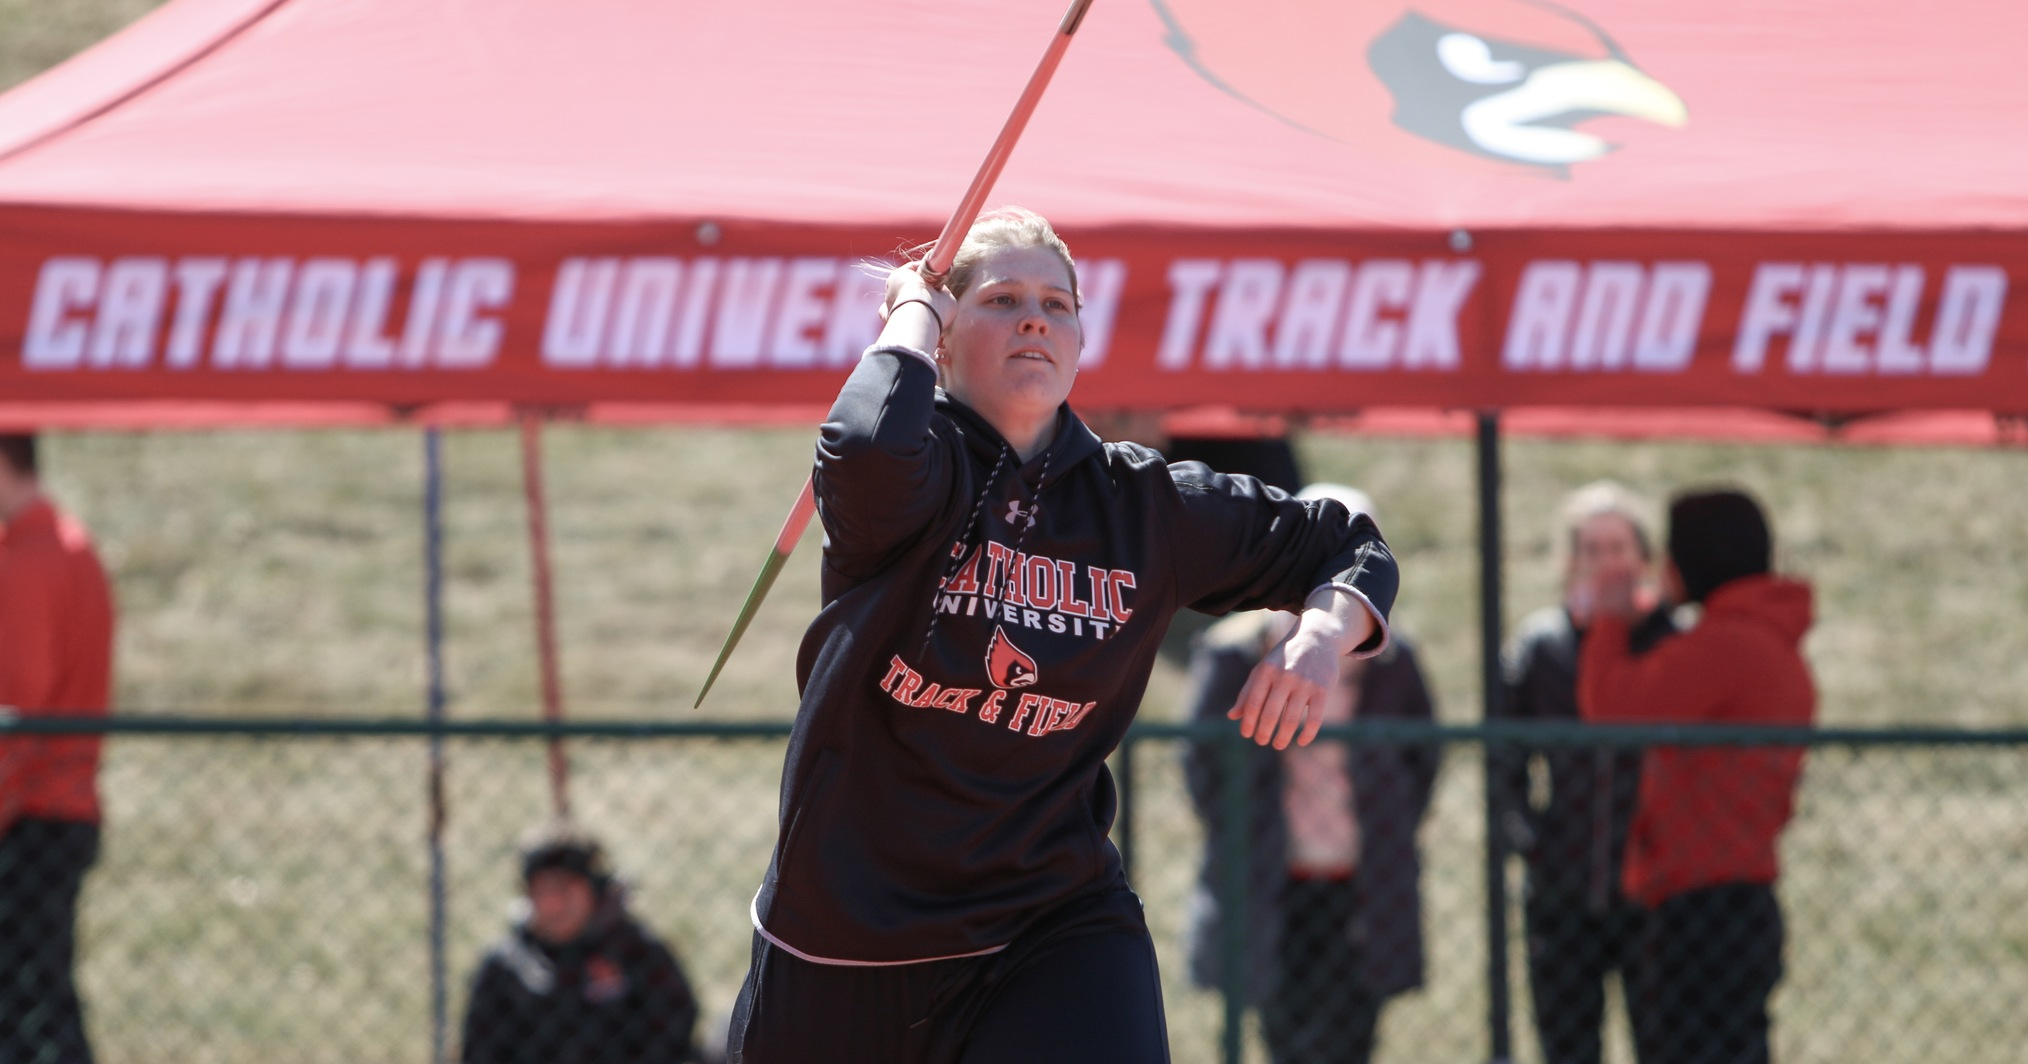 Cardinals Complete Day One of the Landmark Conference Championships